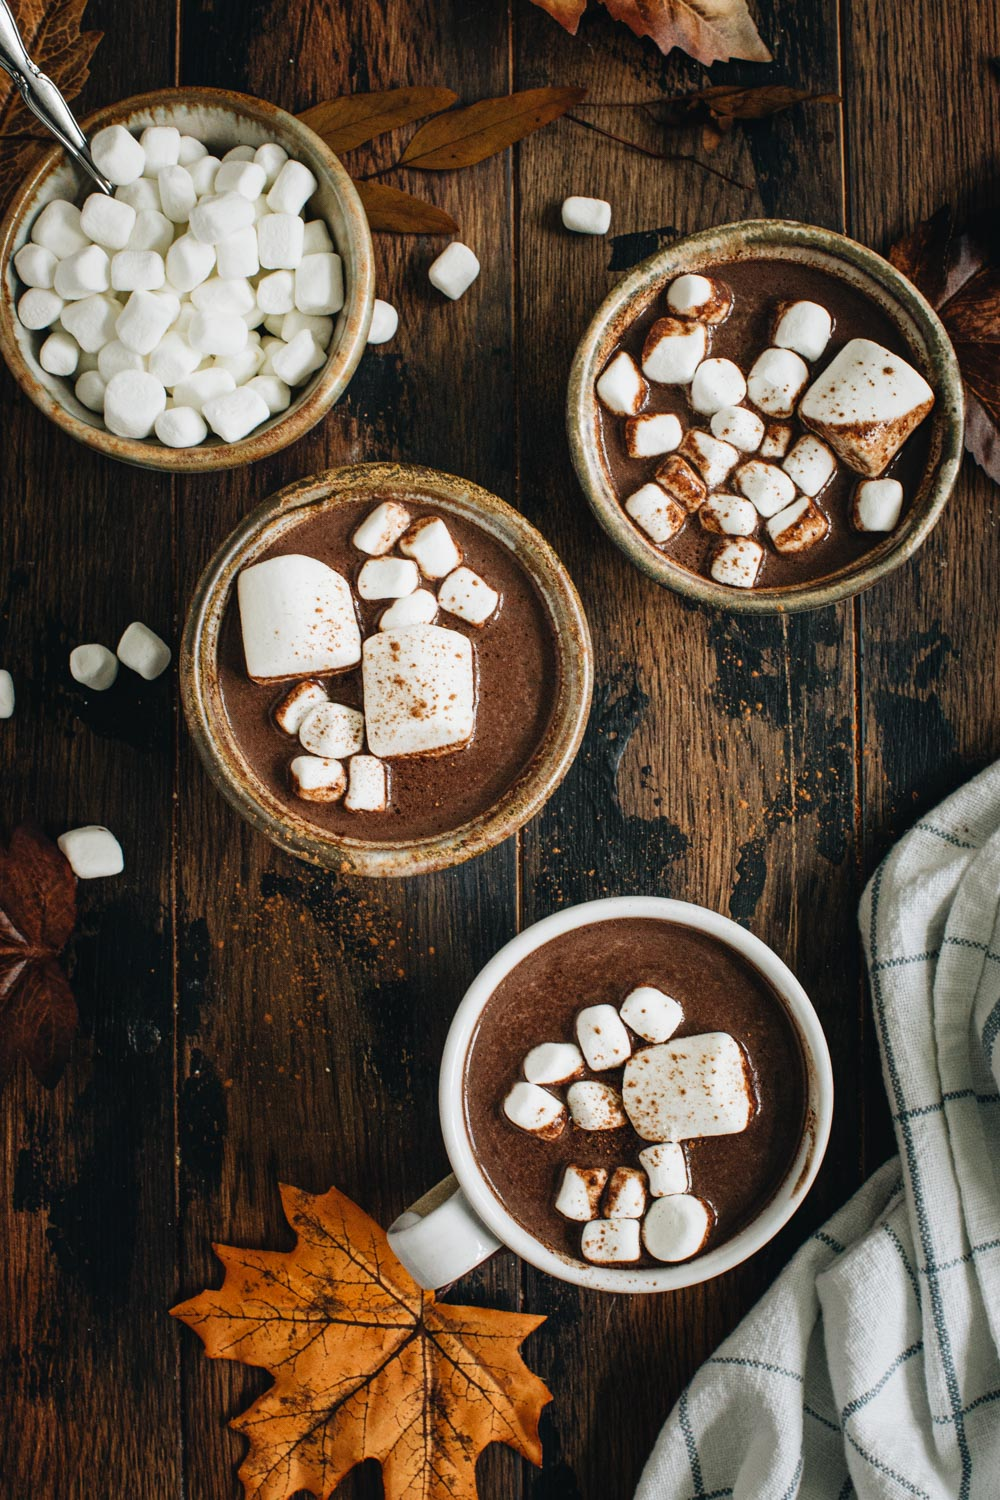 Three cups of pumpkin hot chocolate topped with marshmallows on a wooden table with a bowl full of mini marshmallows.